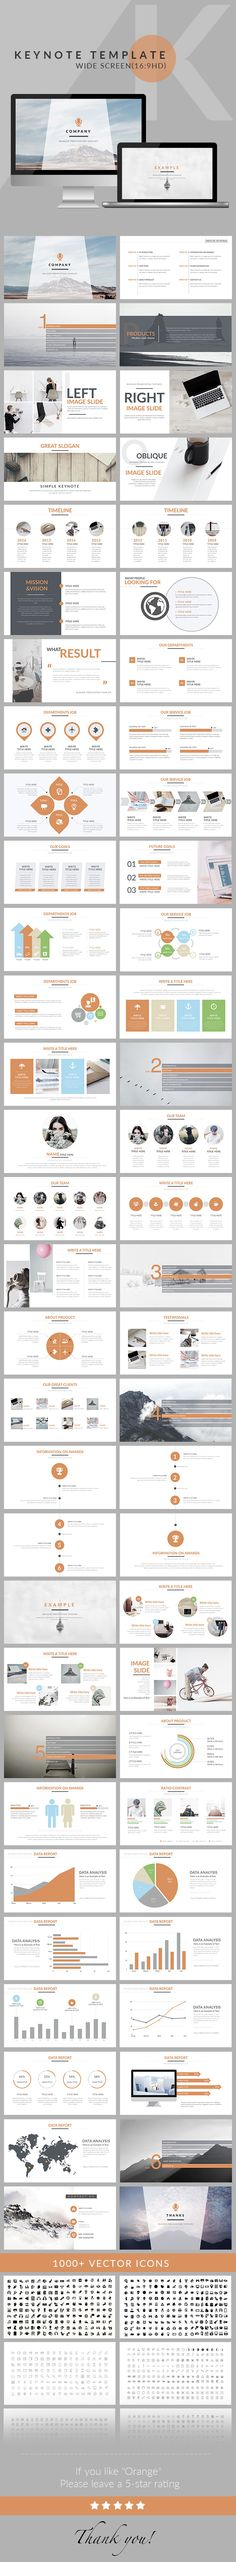 Orange - Clean trend business Keynote Template. Download here: http://graphicriver.net/item/orange-clean-trend-business-keynote-template/16360275?ref=ksioks